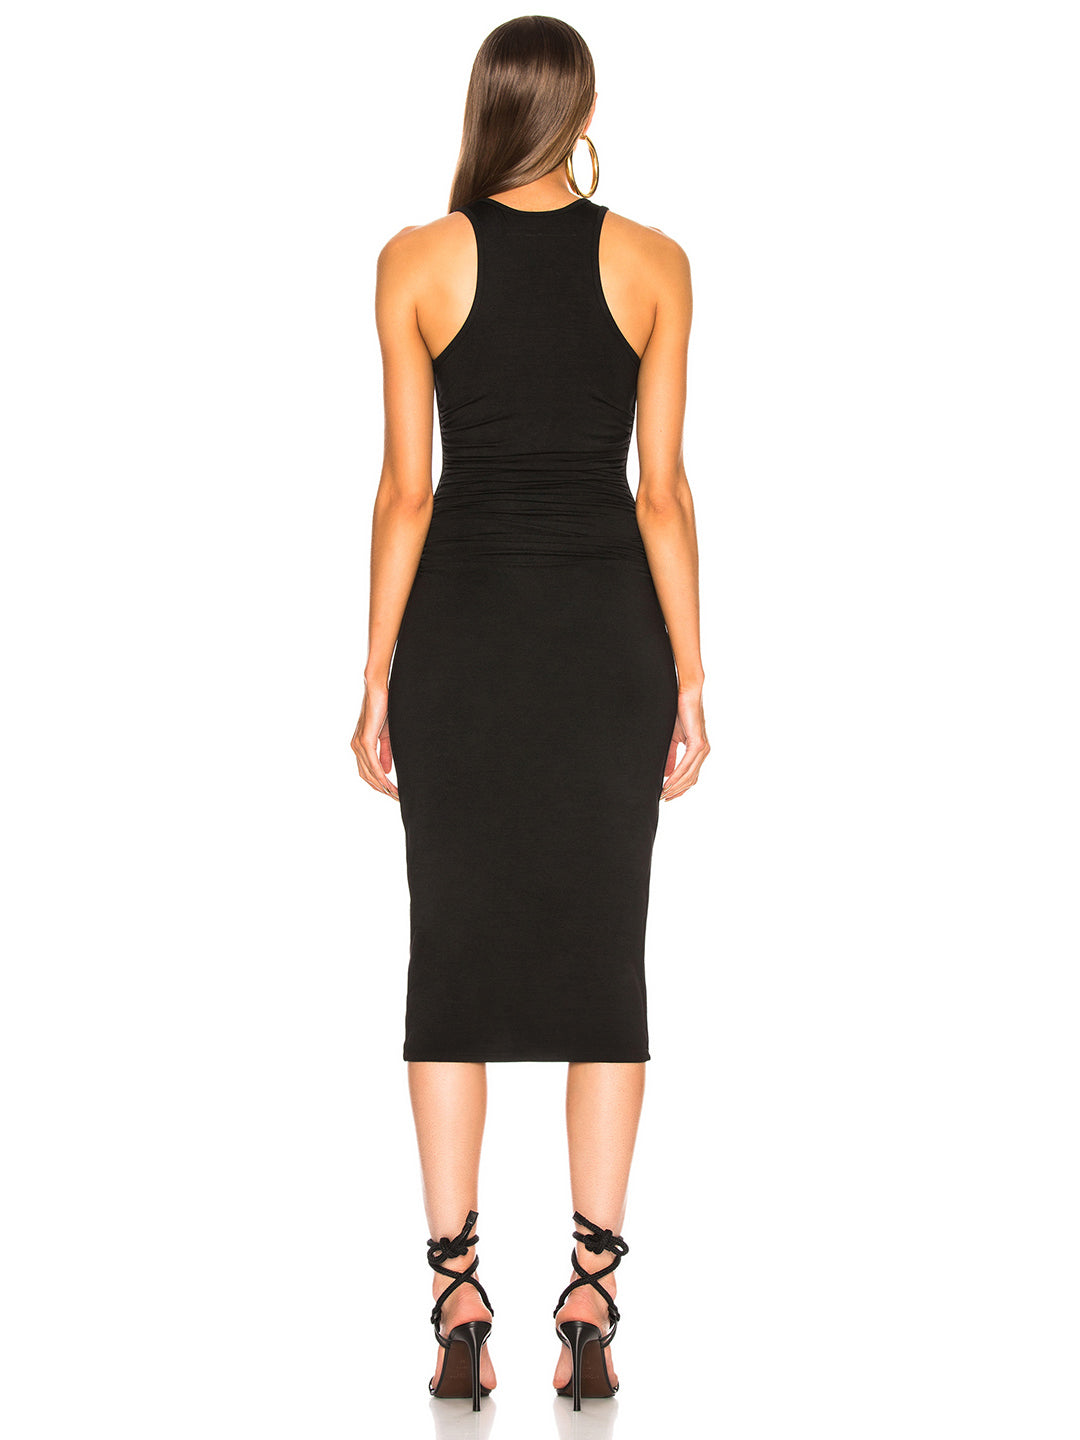 TILDEN | Enza Costa Sheath Tank Side Ruched Midi Dress